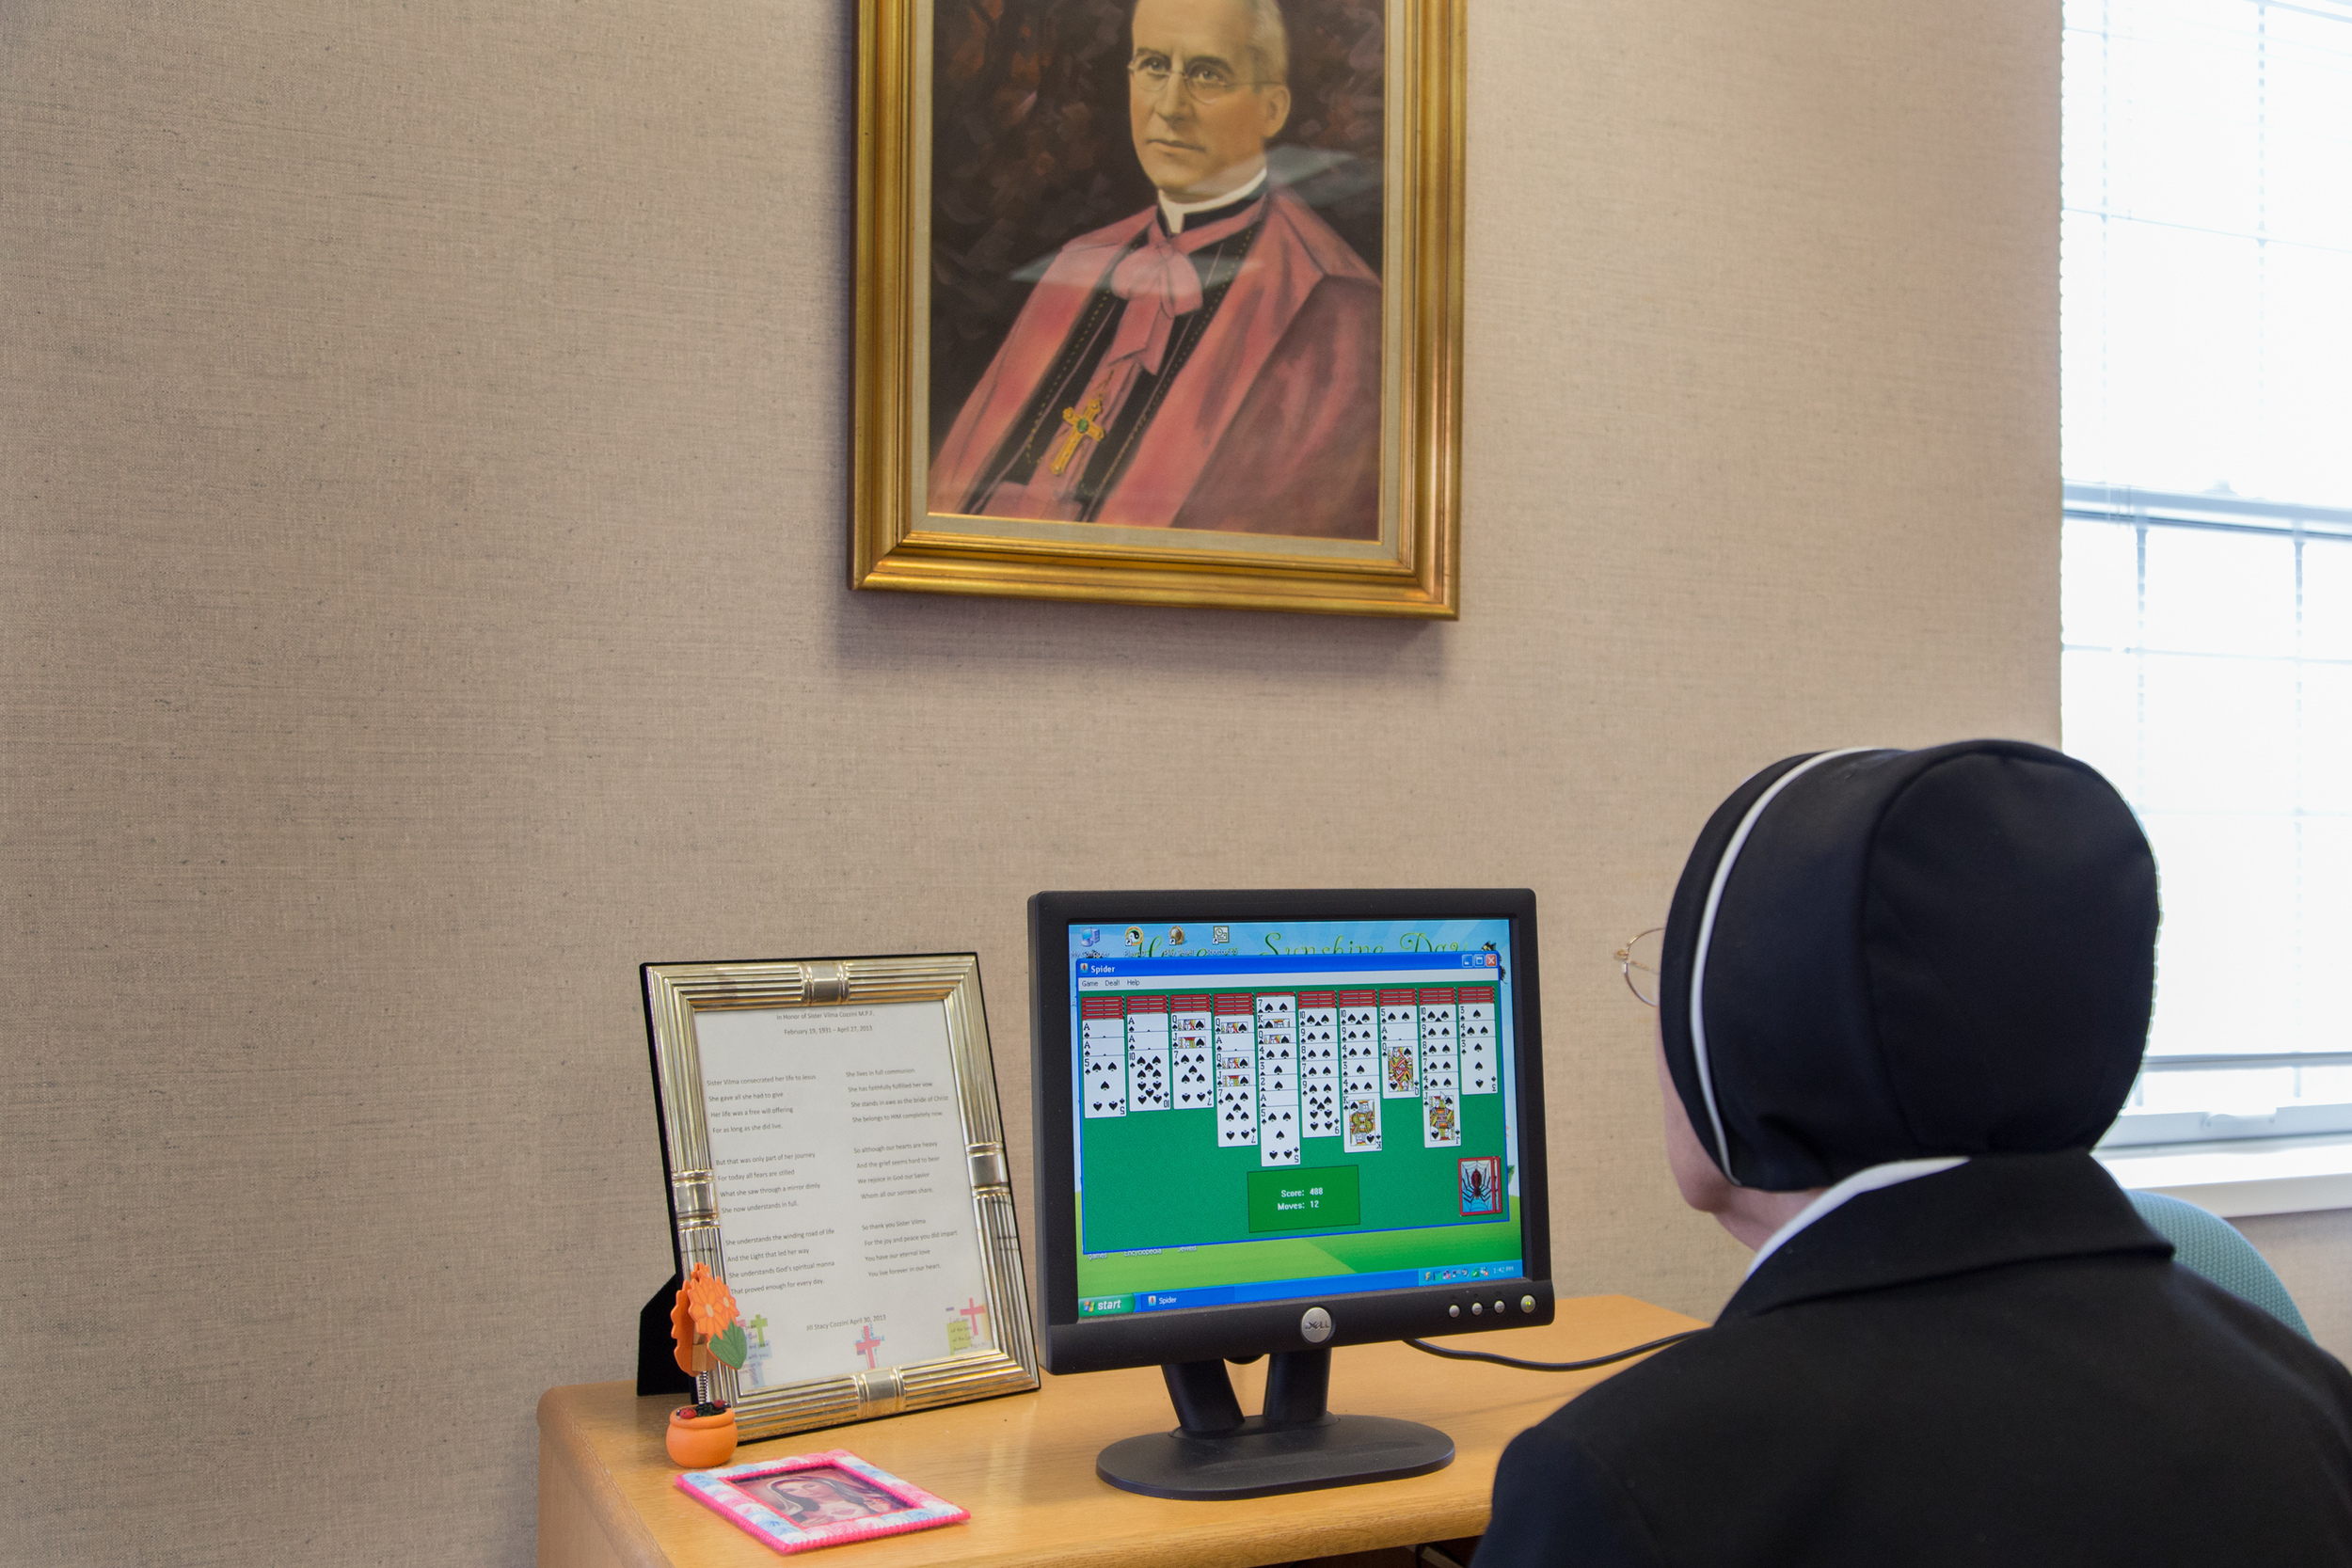 A Sister who works in the infirmary library, takes time out of her day to play an on-line game of Black Widow Solitaire.